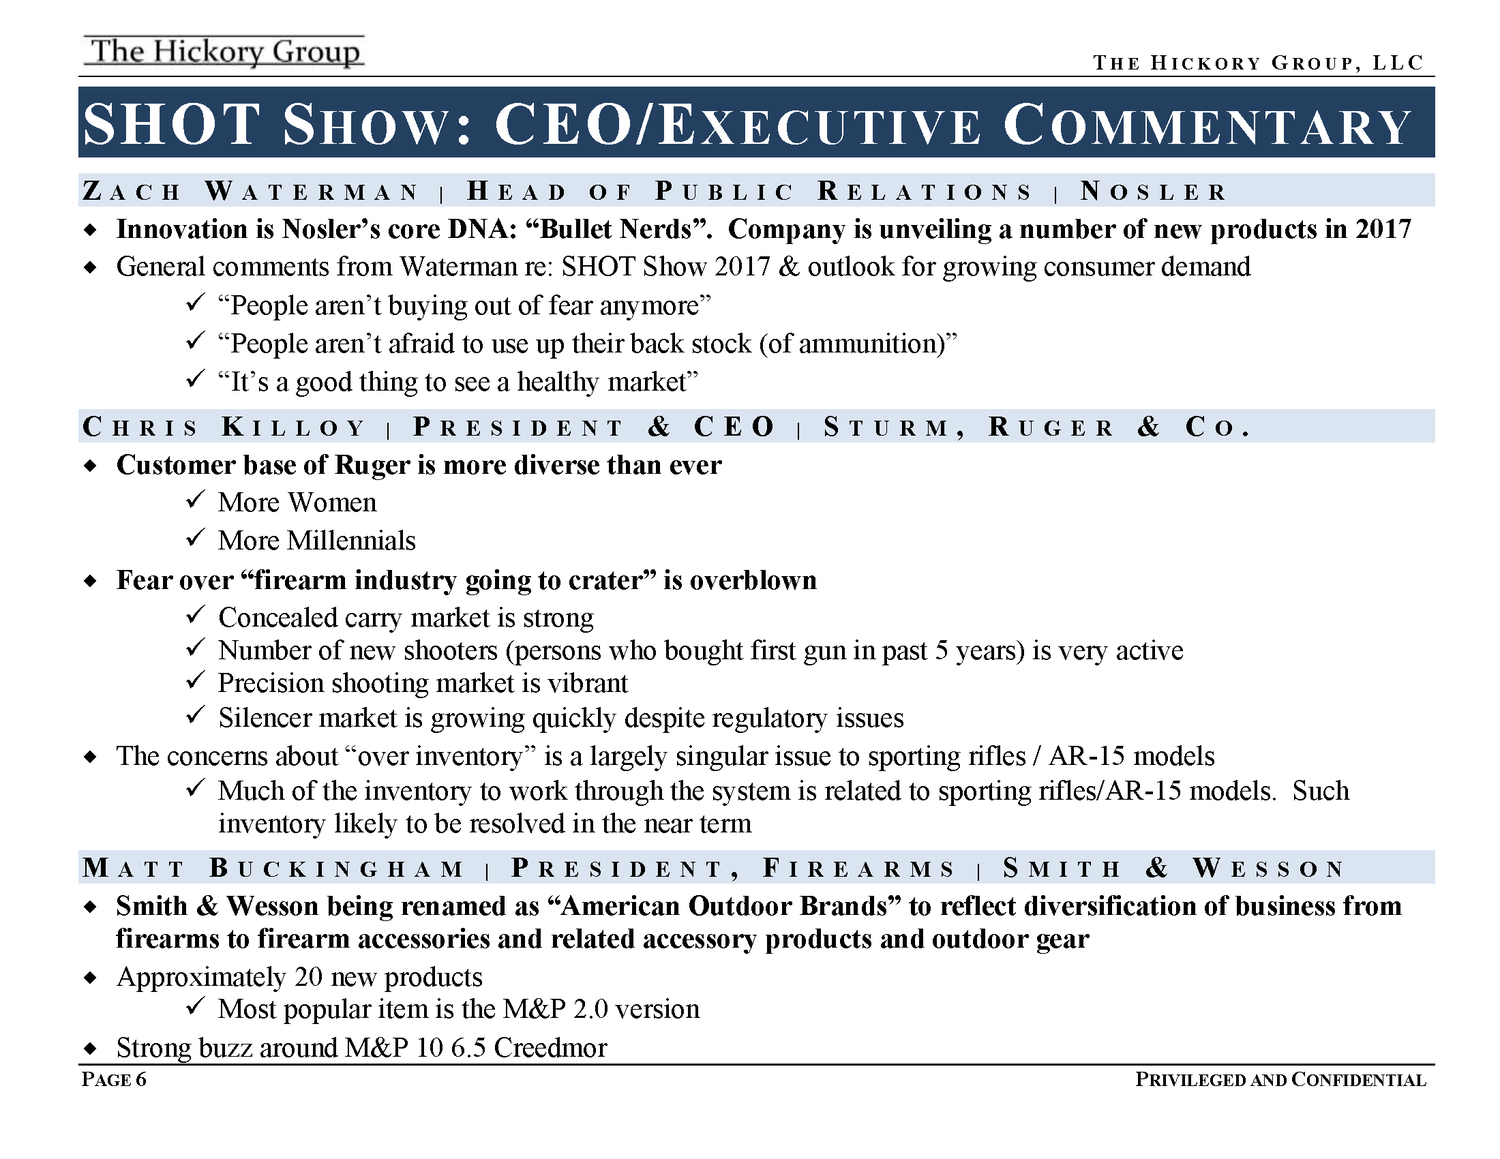 FLASH+REPORT+-+SHOT+SHOW+-+FINAL+(February+3+2017)+Privileged+and+Confidential_Page_6.png